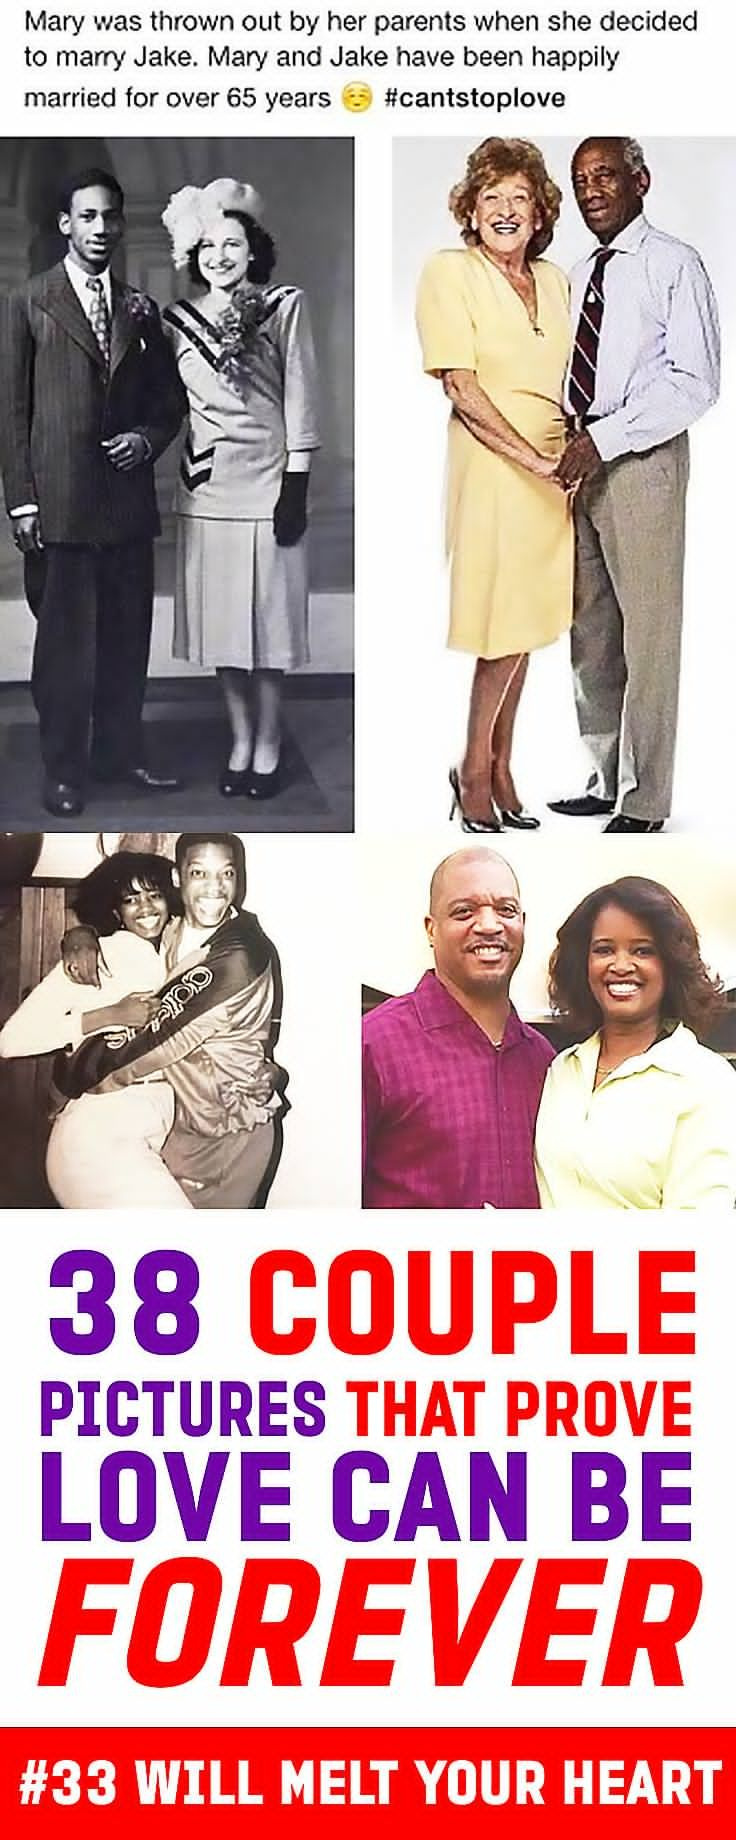 Love is in the air and love is forever for these sweet couples. Look at their photos from then and now and be filled with love.